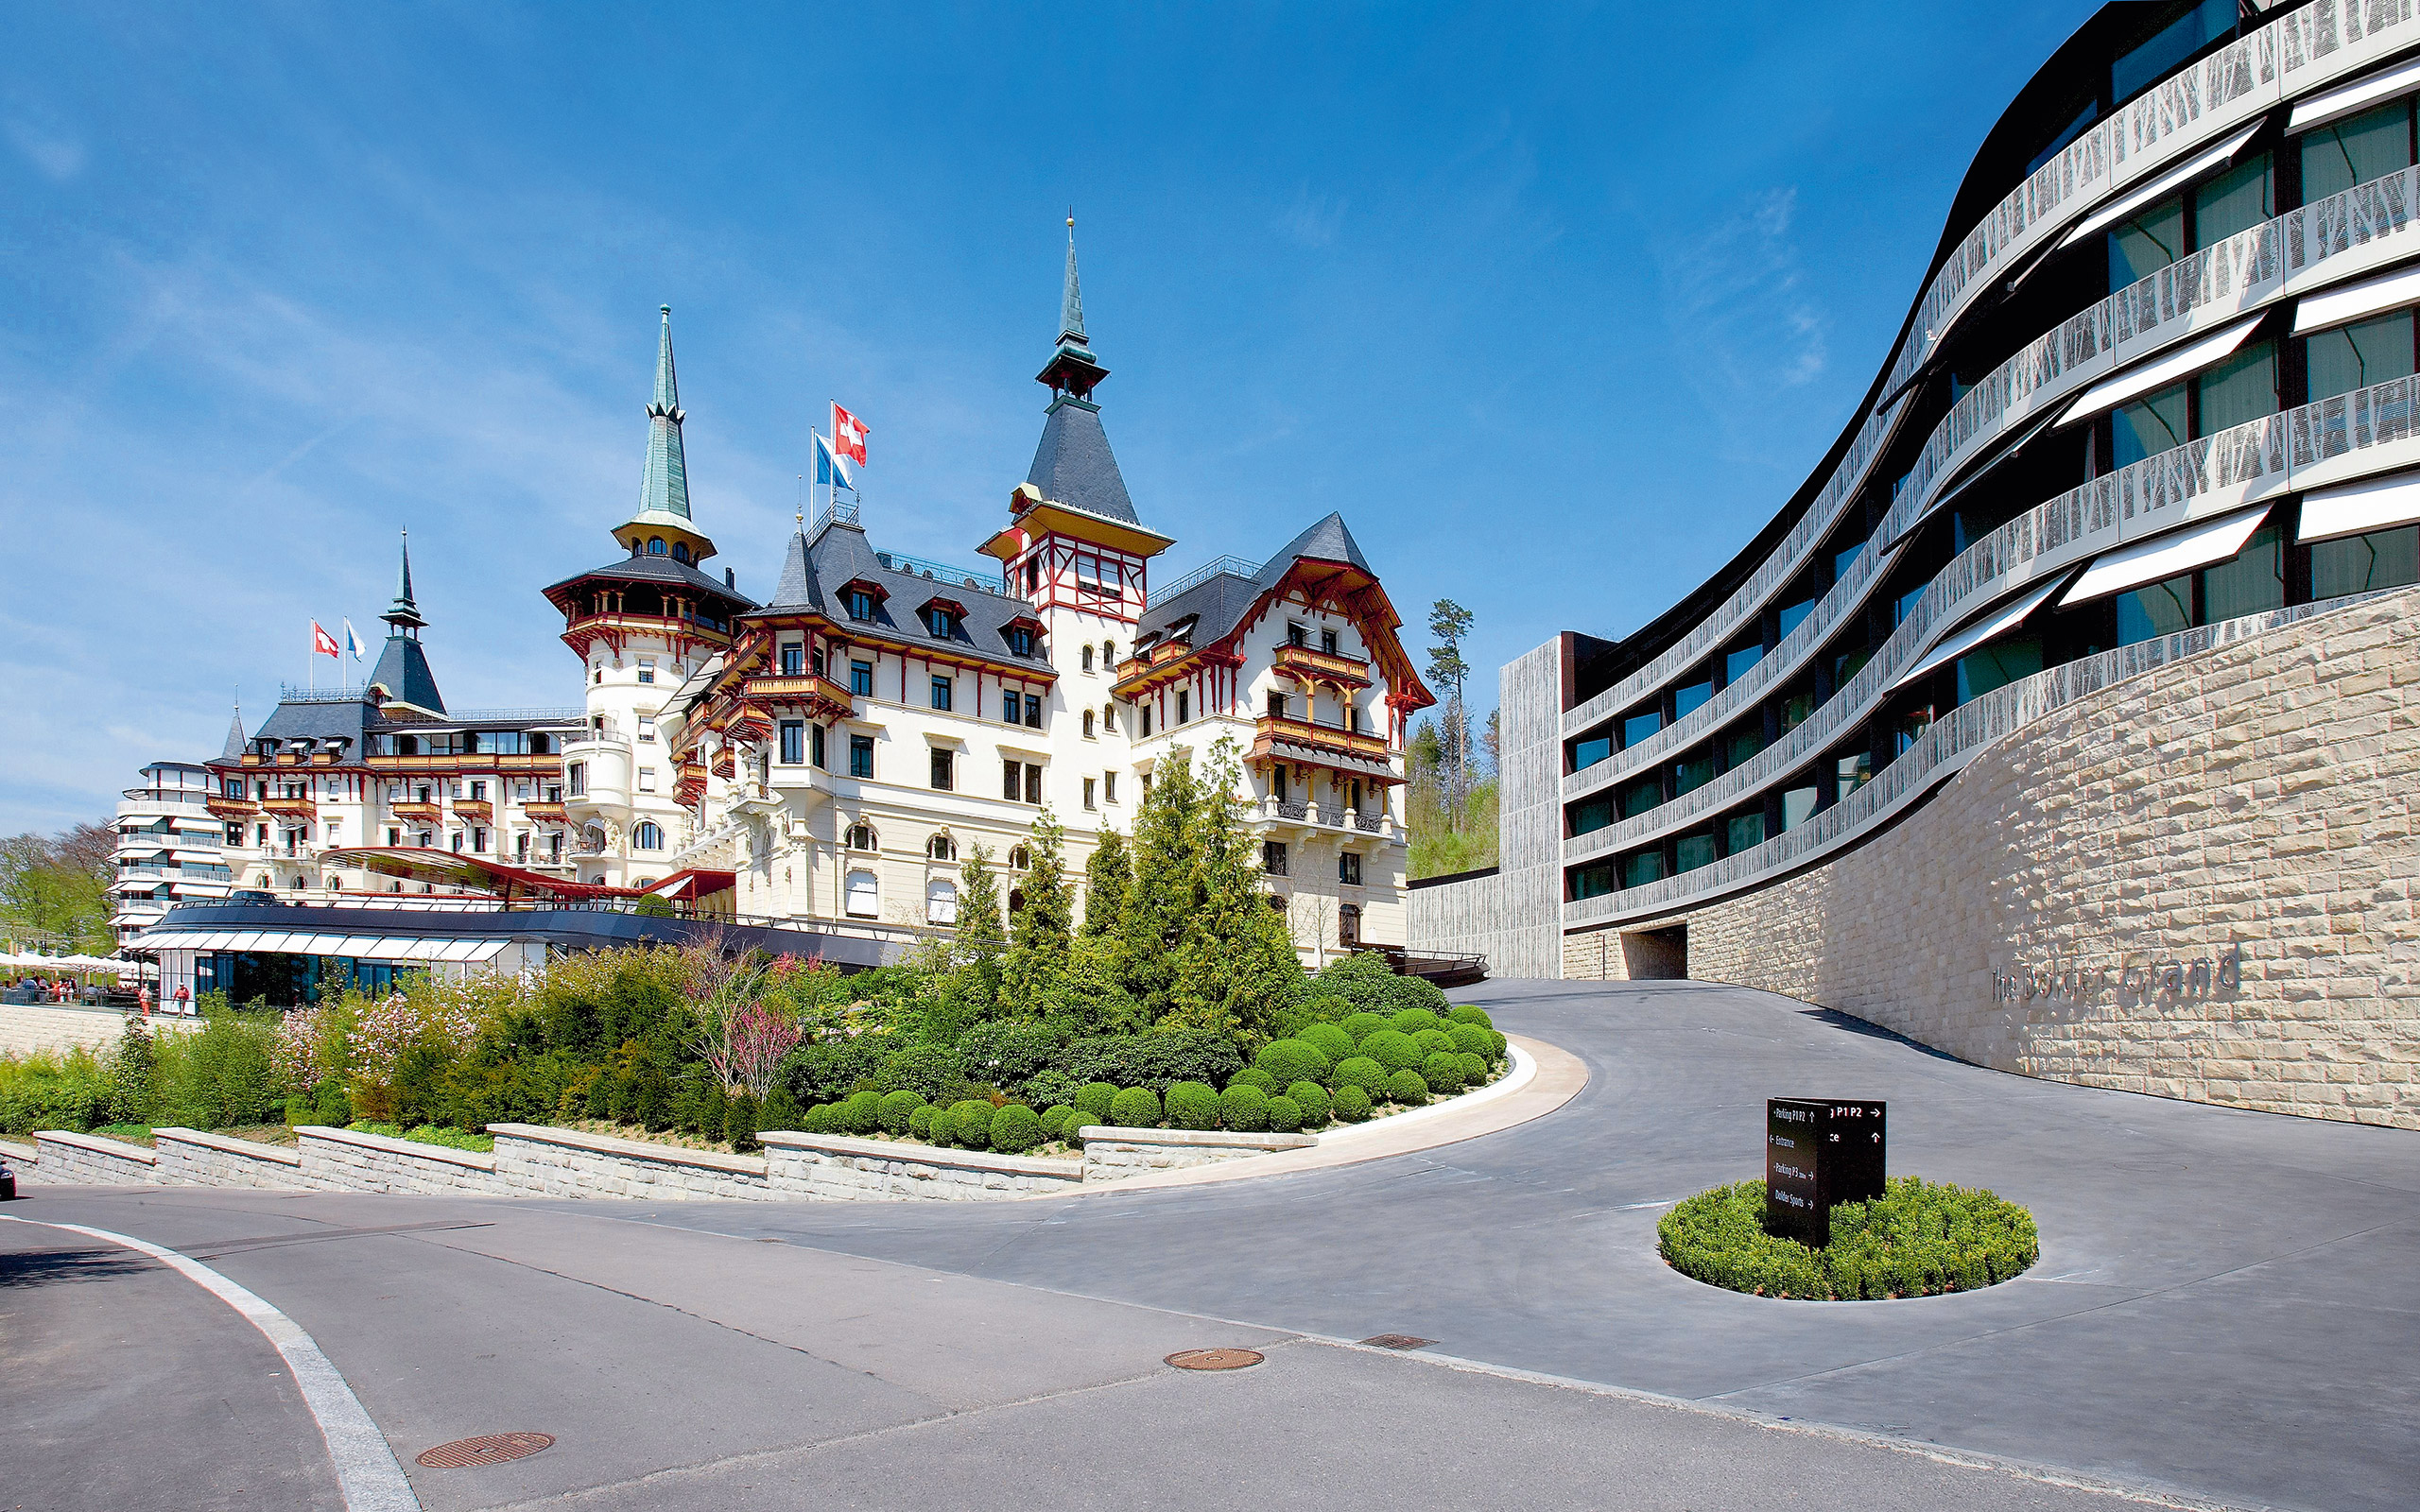 Interlaken Spa Hotel